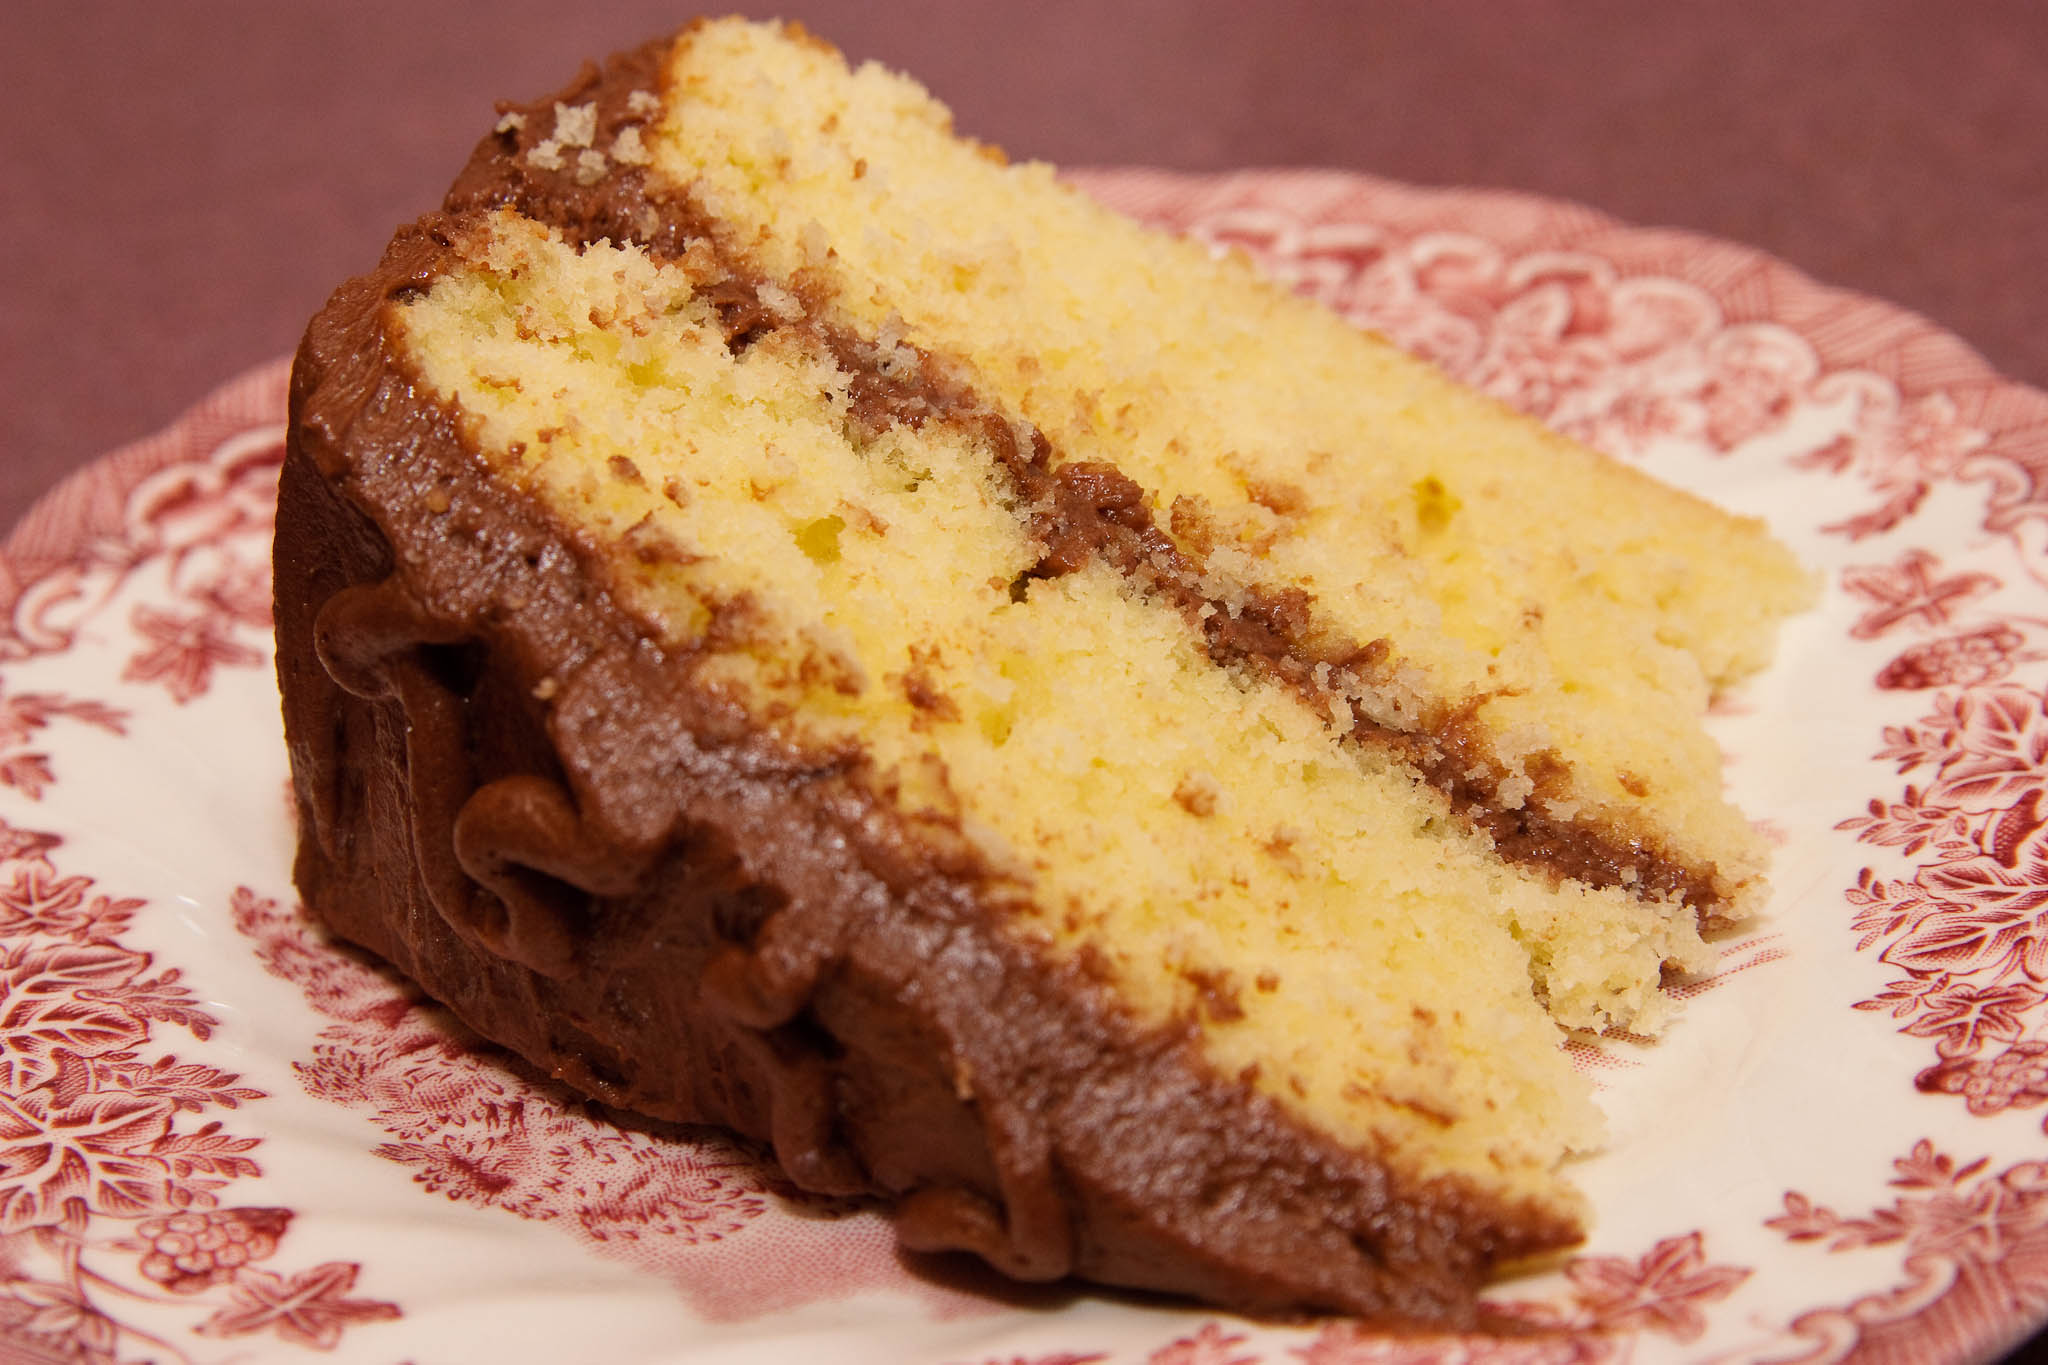 Cake recipe yellow cake from scratch recipe for How to make cake batter from scratch